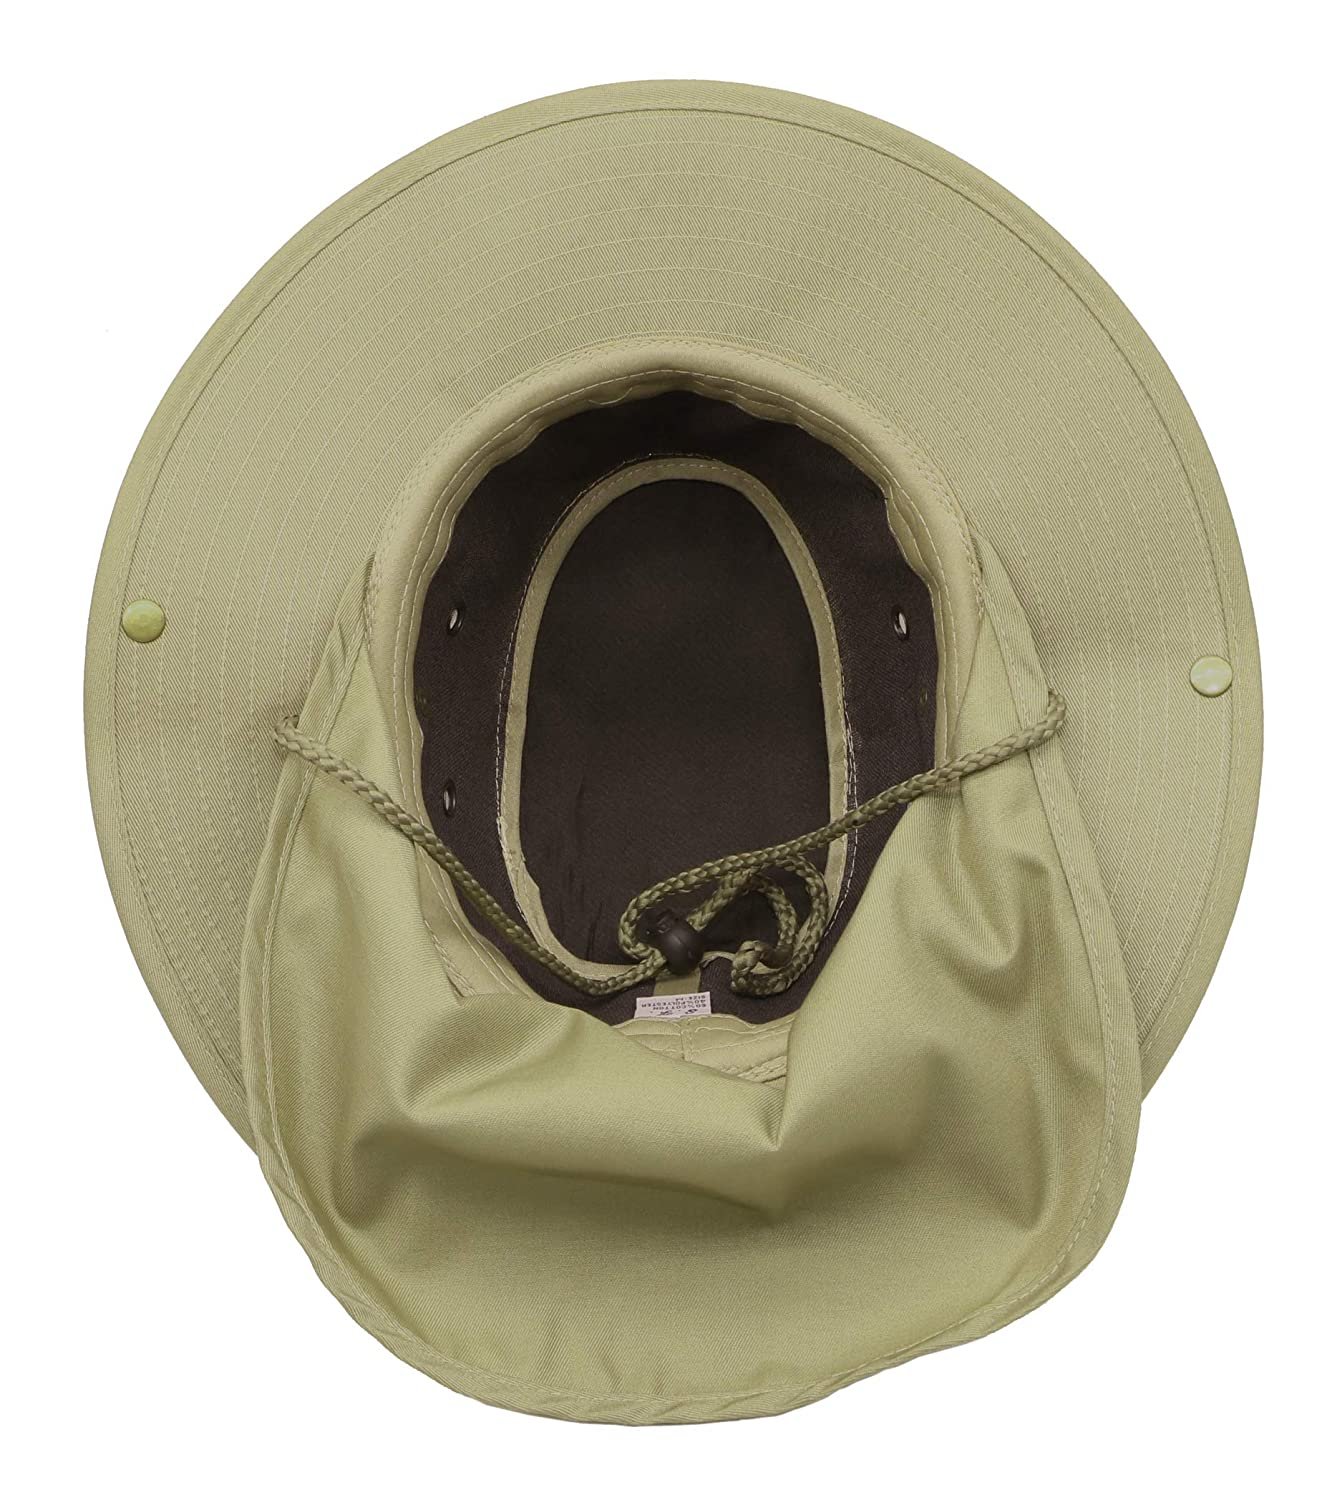 RufnTop Bora Booney Sun Hat for Outdoor Wide Brim Cap with UPF 50 Protection